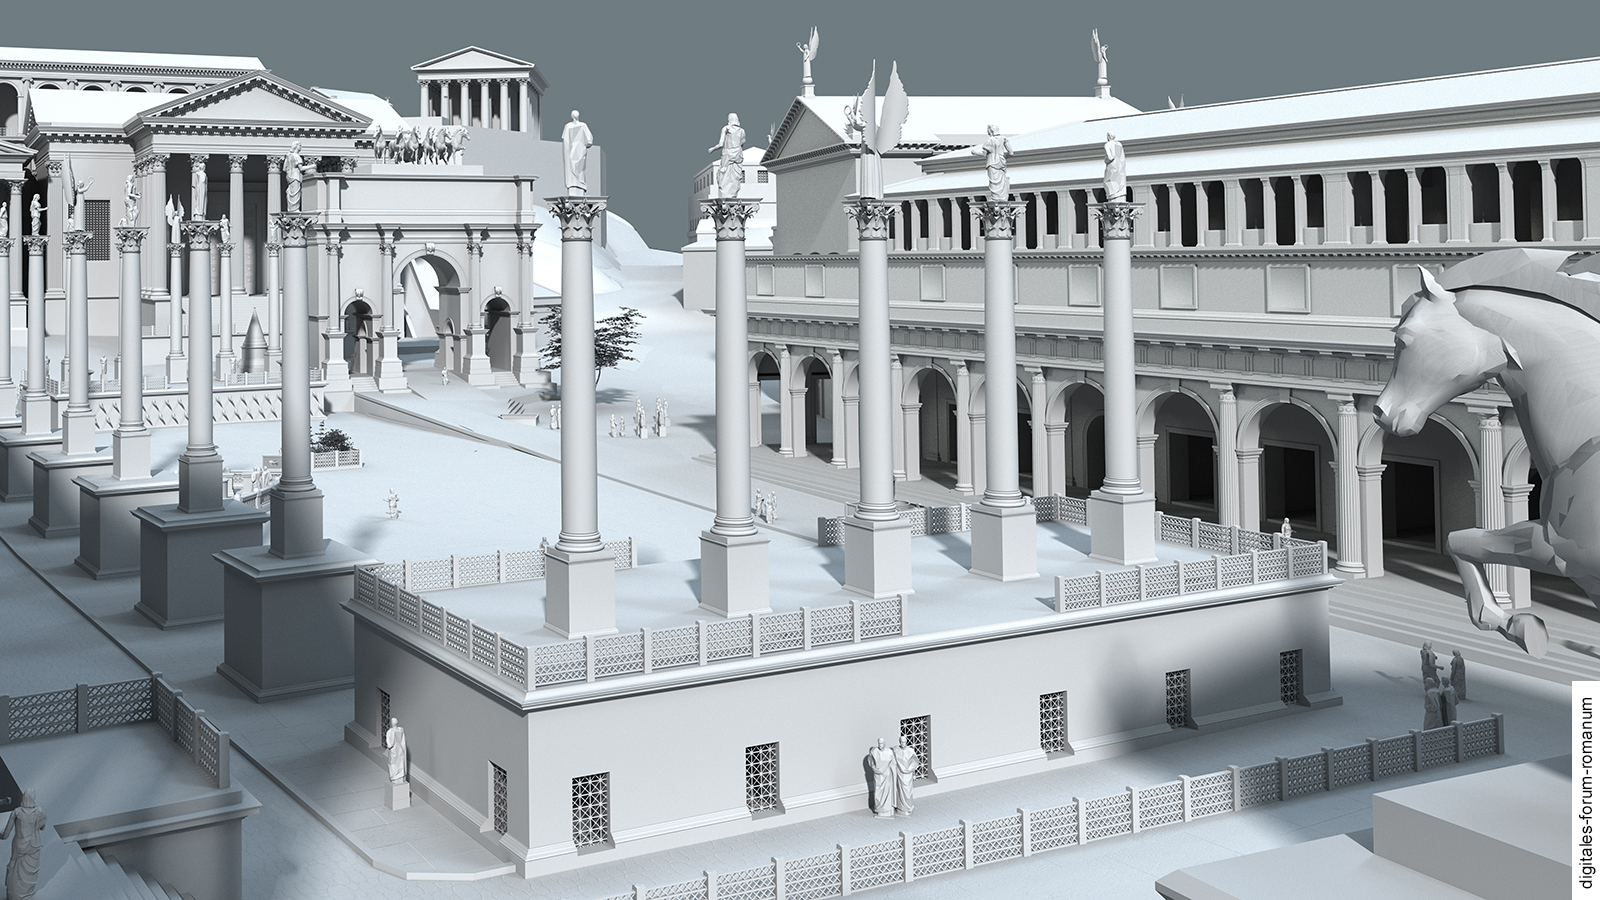 Project - Digitales Forum Romanum |Forum Romanum 3d